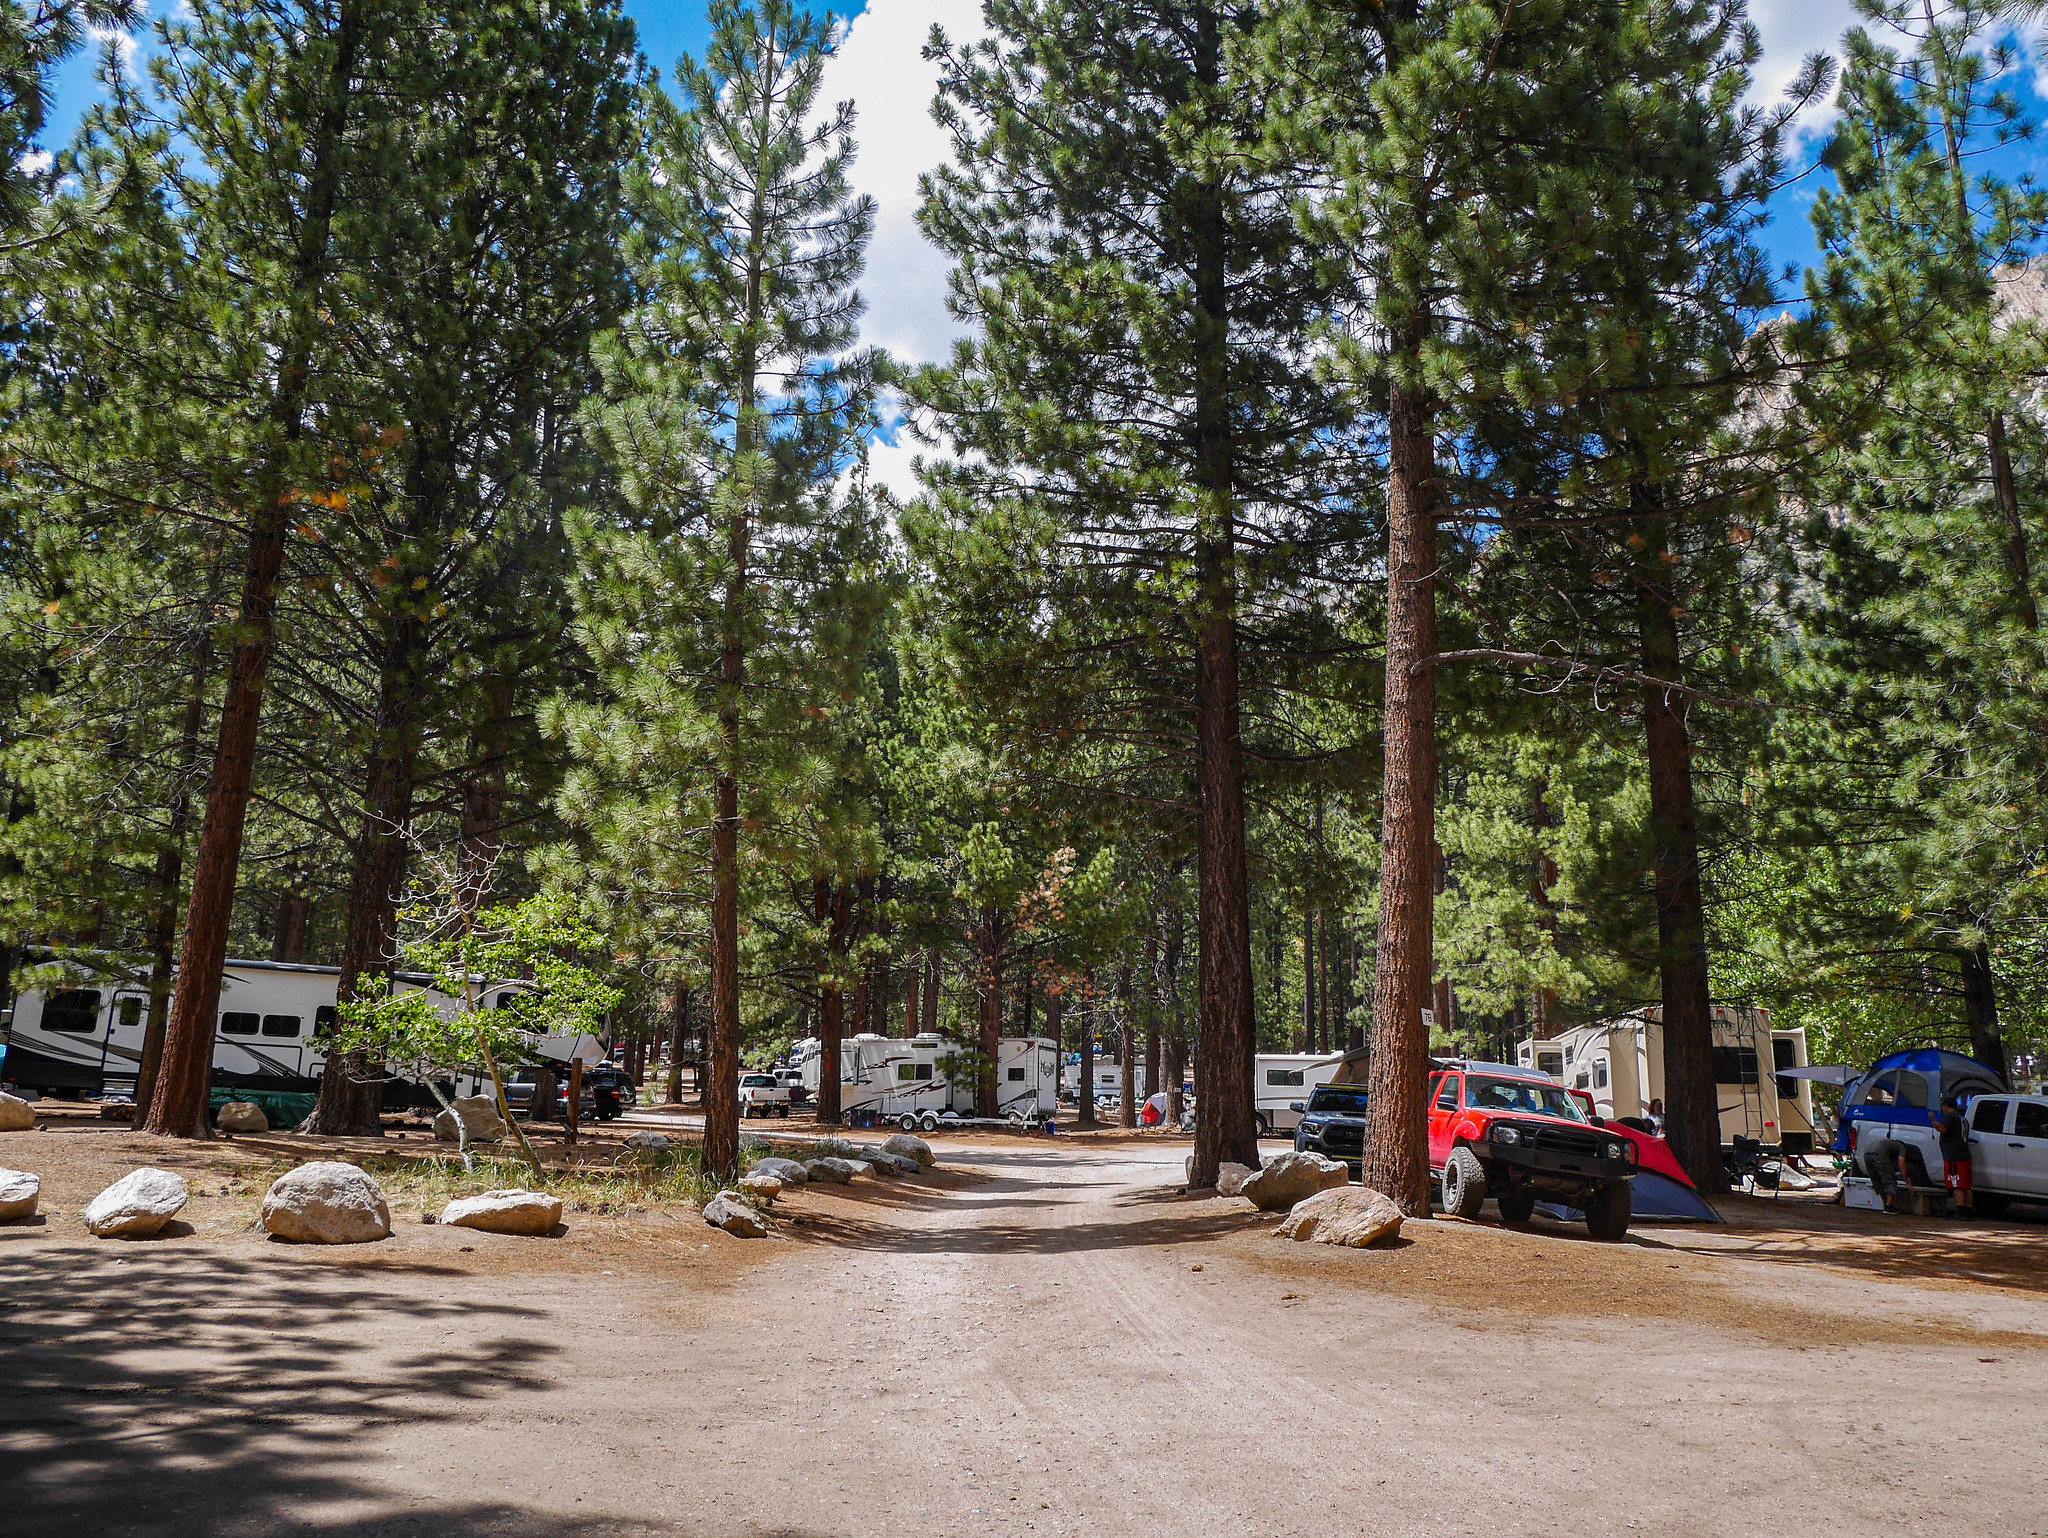 A city of RVs awaits at Twin Lakes campground